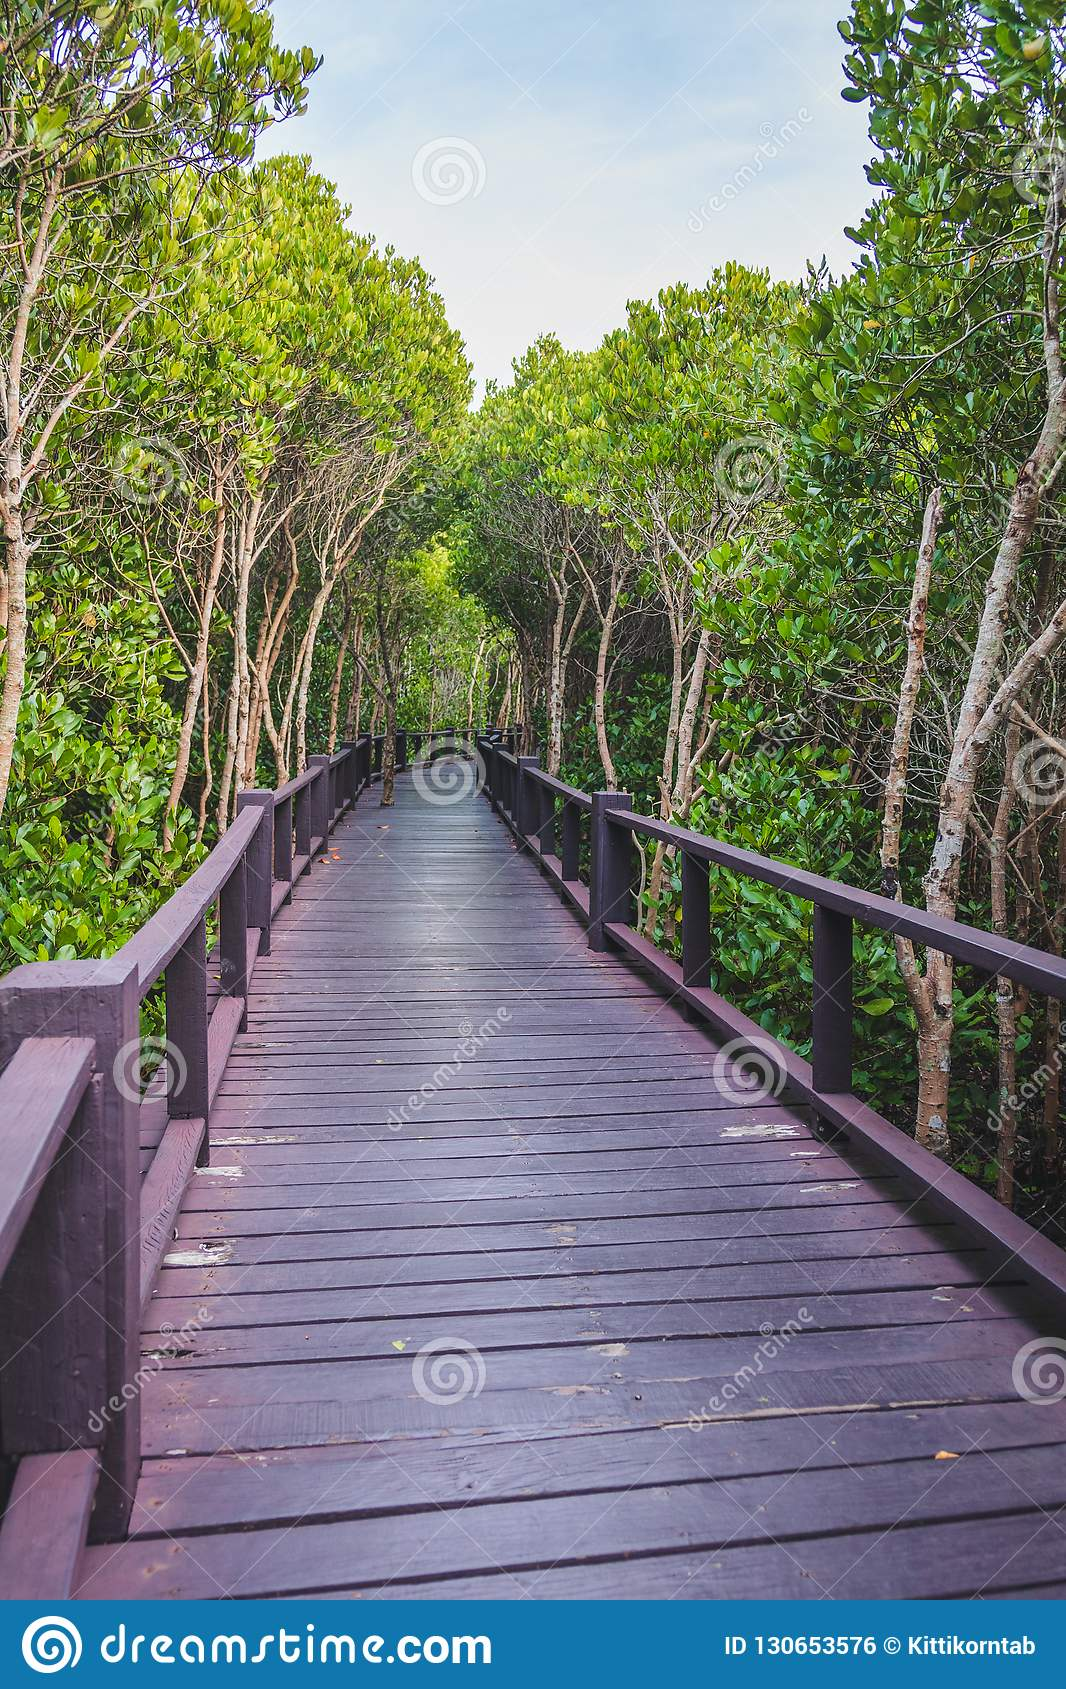 A wooden bridge in the middle of a mangrove forest with beautiful sky